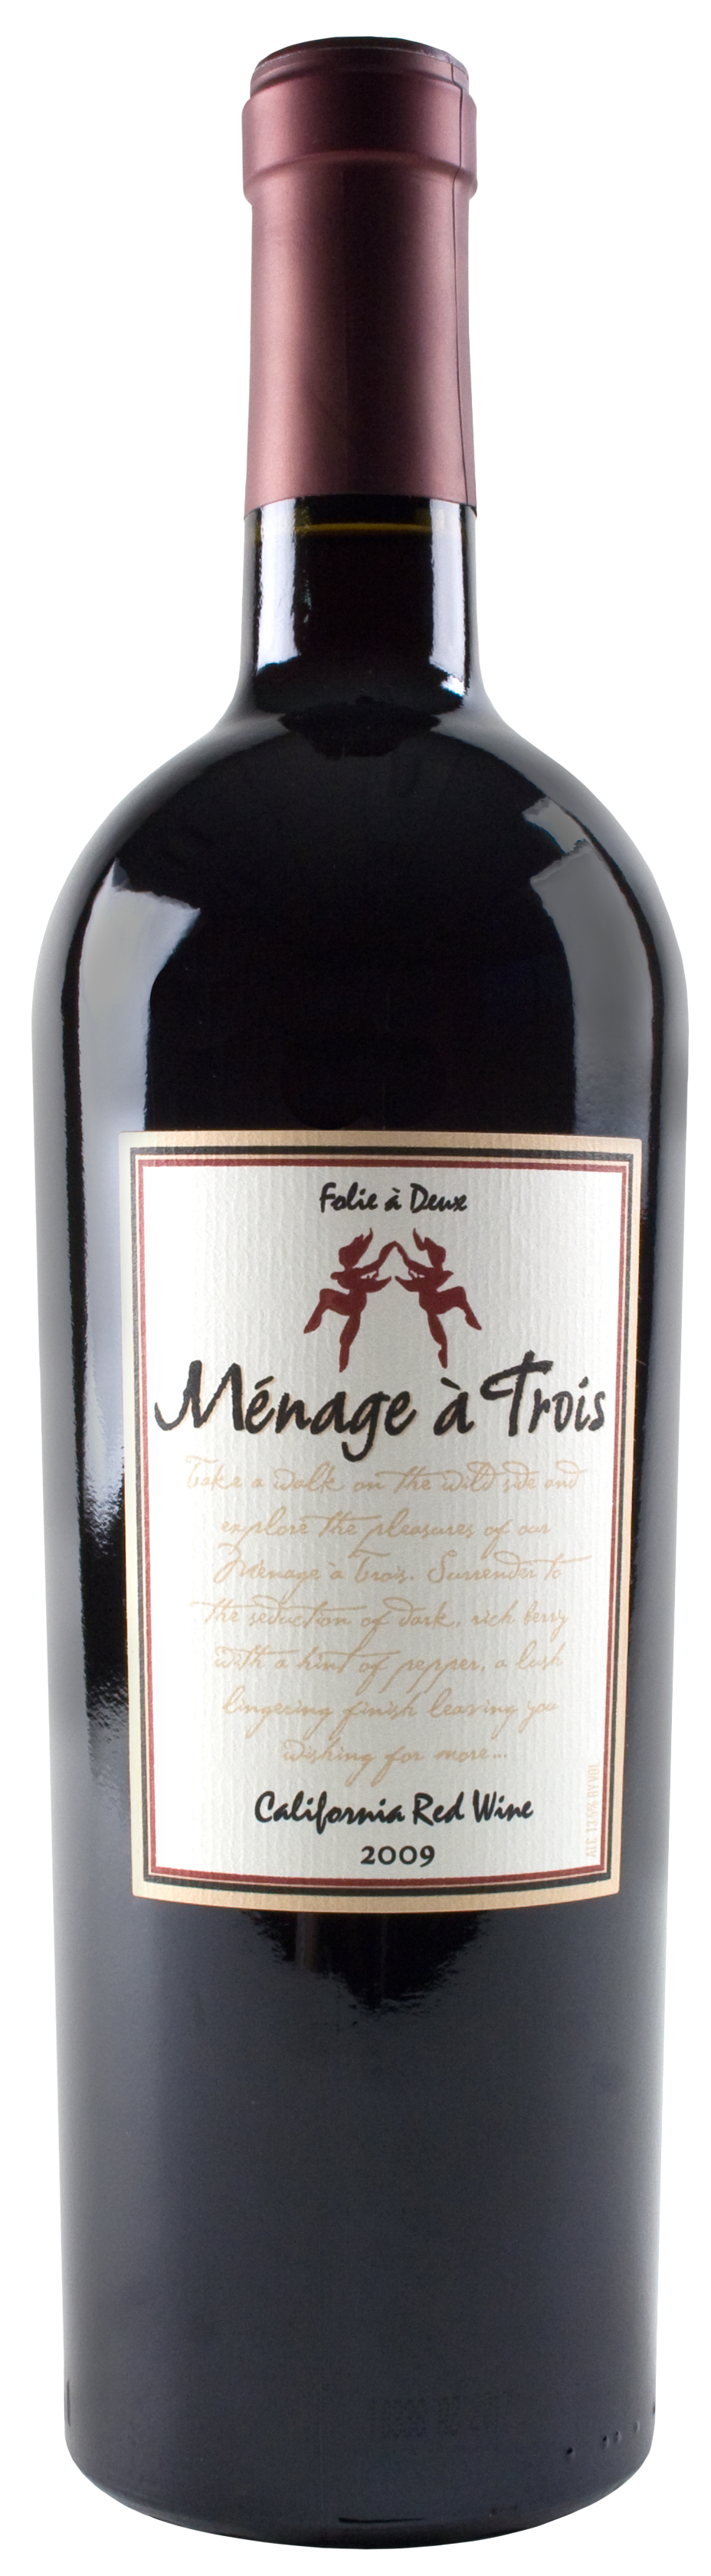 review wines of menage a trois 2013 releases drinkhacker. Black Bedroom Furniture Sets. Home Design Ideas